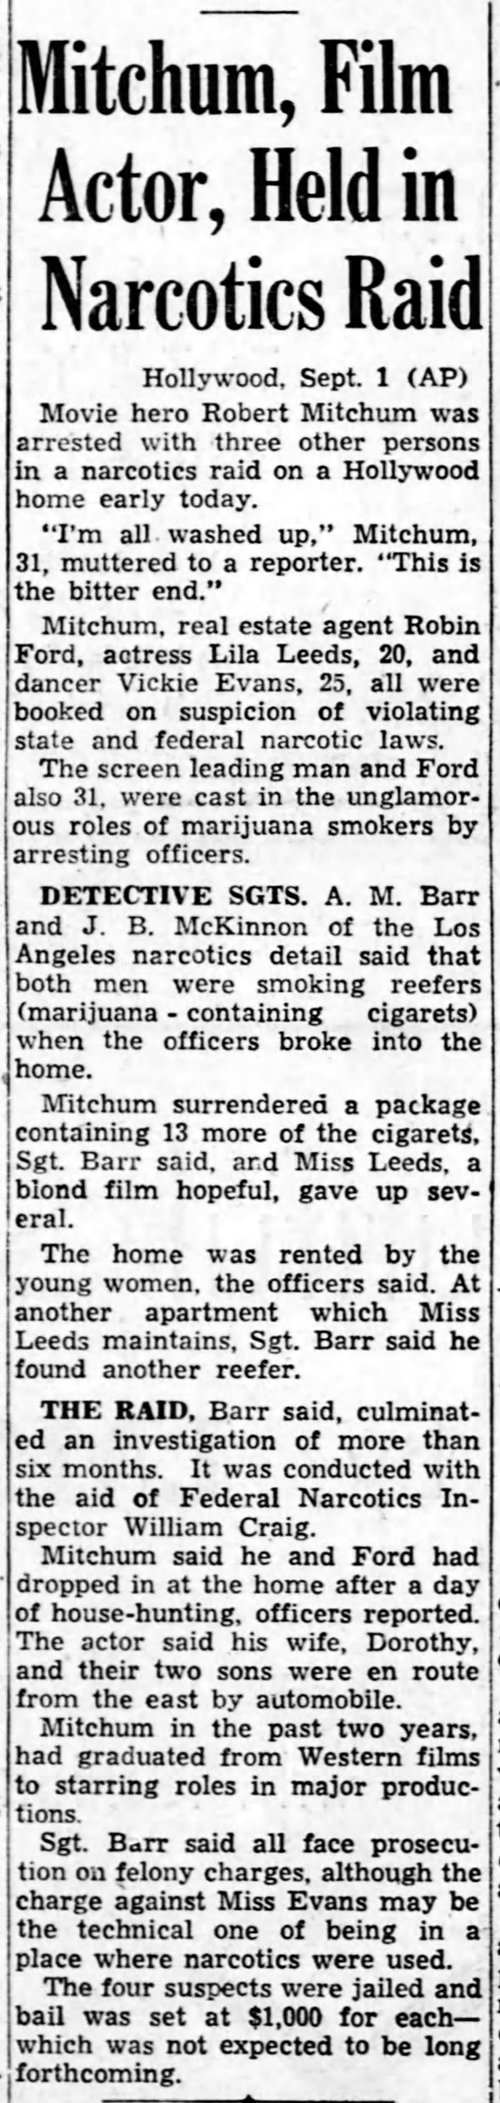 robert-mitchum-480901-the-decatur-daily-review-p1b